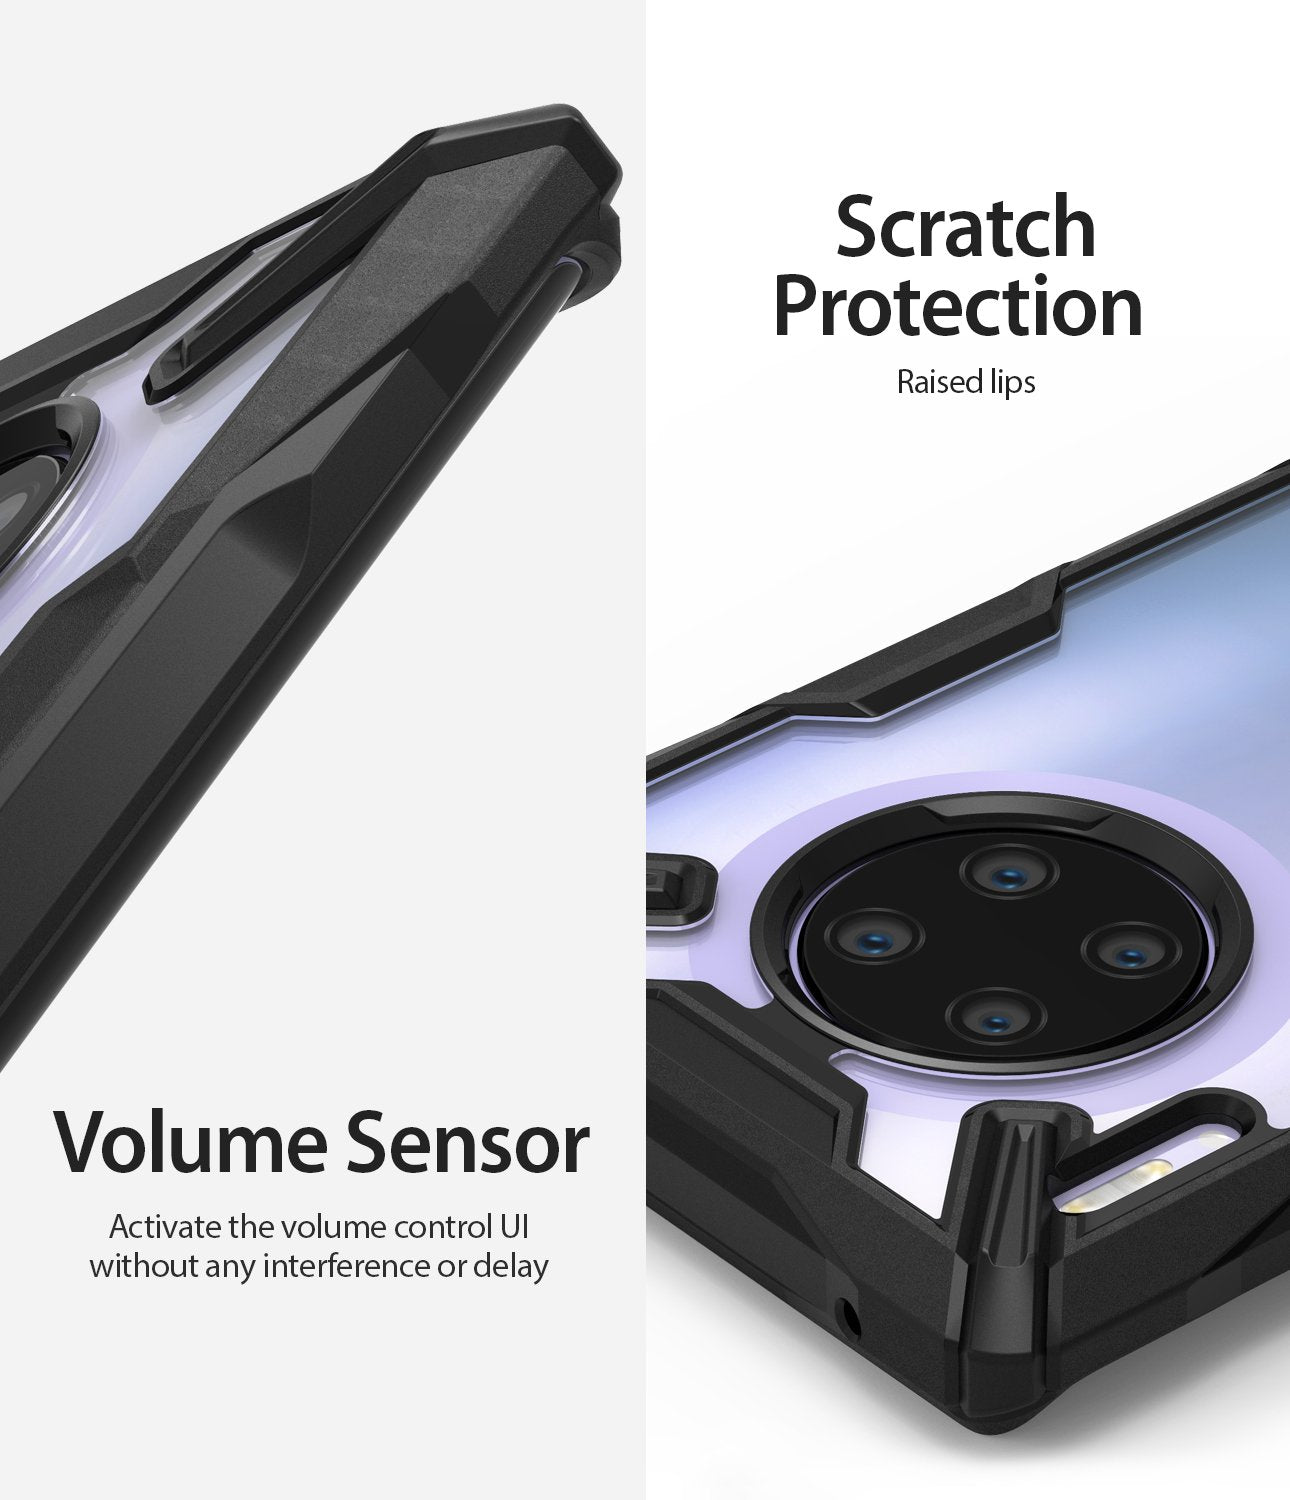 scratch resistant coating and responsive volume buttons